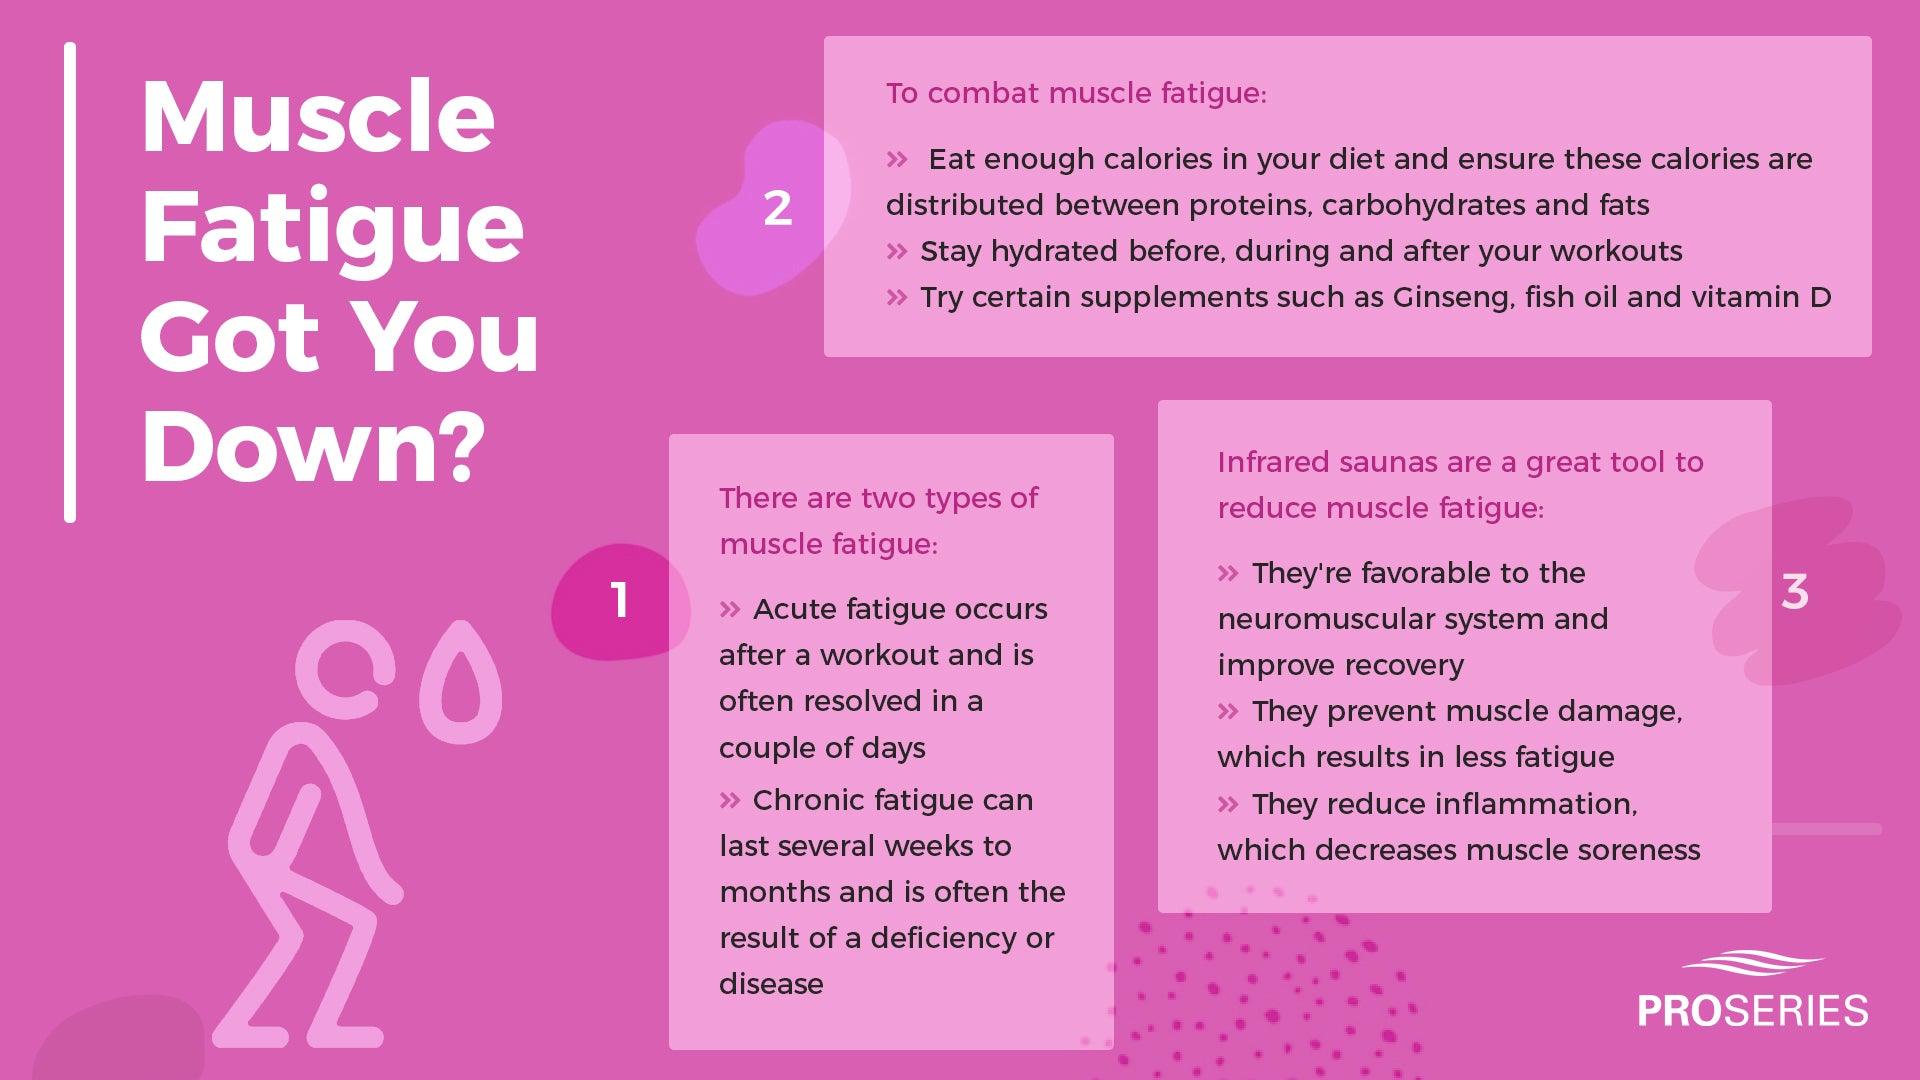 1. There are two types of muscle fatigue: -Acute fatigue occurs after a workout and is often resolved in a couple of days -Chronic fatigue can last several weeks to months and is often the result of a deficiency or disease 2. To combat muscle fatigue: -Eat enough calories in your diet and ensure these calories are distributed between proteins, carbohydrates and fats -Make sure you stay hydrated before, during and after your workouts -Try certain supplements such as Ginseng, fish oil and vitamin D 3. Infrared saunas are a great tool to reduce muscle fatigue: -Infrared saunas are favorable to the neuromuscular system and improve recovery -Infrared waves prevent muscle damage, which results in less fatigue -Infrared saunas reduce inflammation, which decrease muscle soreness